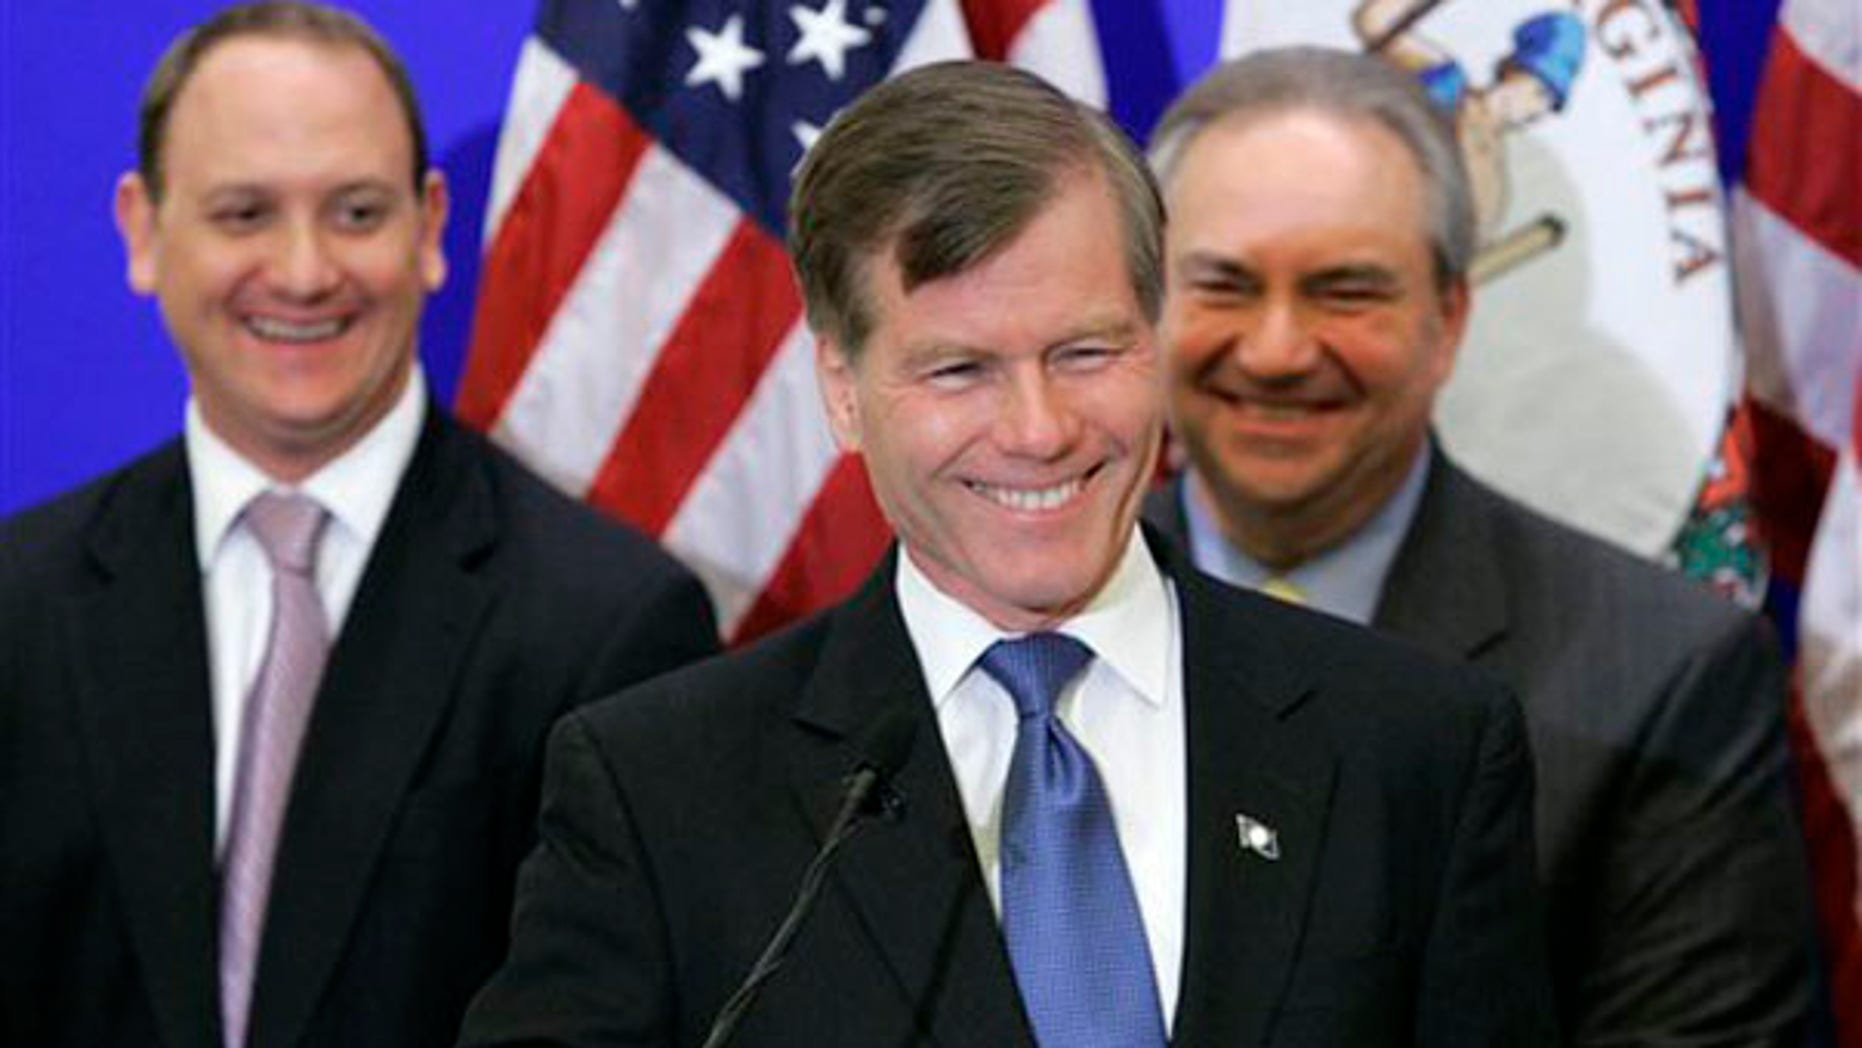 Republican Gov-elect Bob McDonnell smiles at a news conference with transition members, Phil Cox, left, and Lt. Gov. Bill Bolling, right, in Richmond Nov. 4.  (AP Photo)